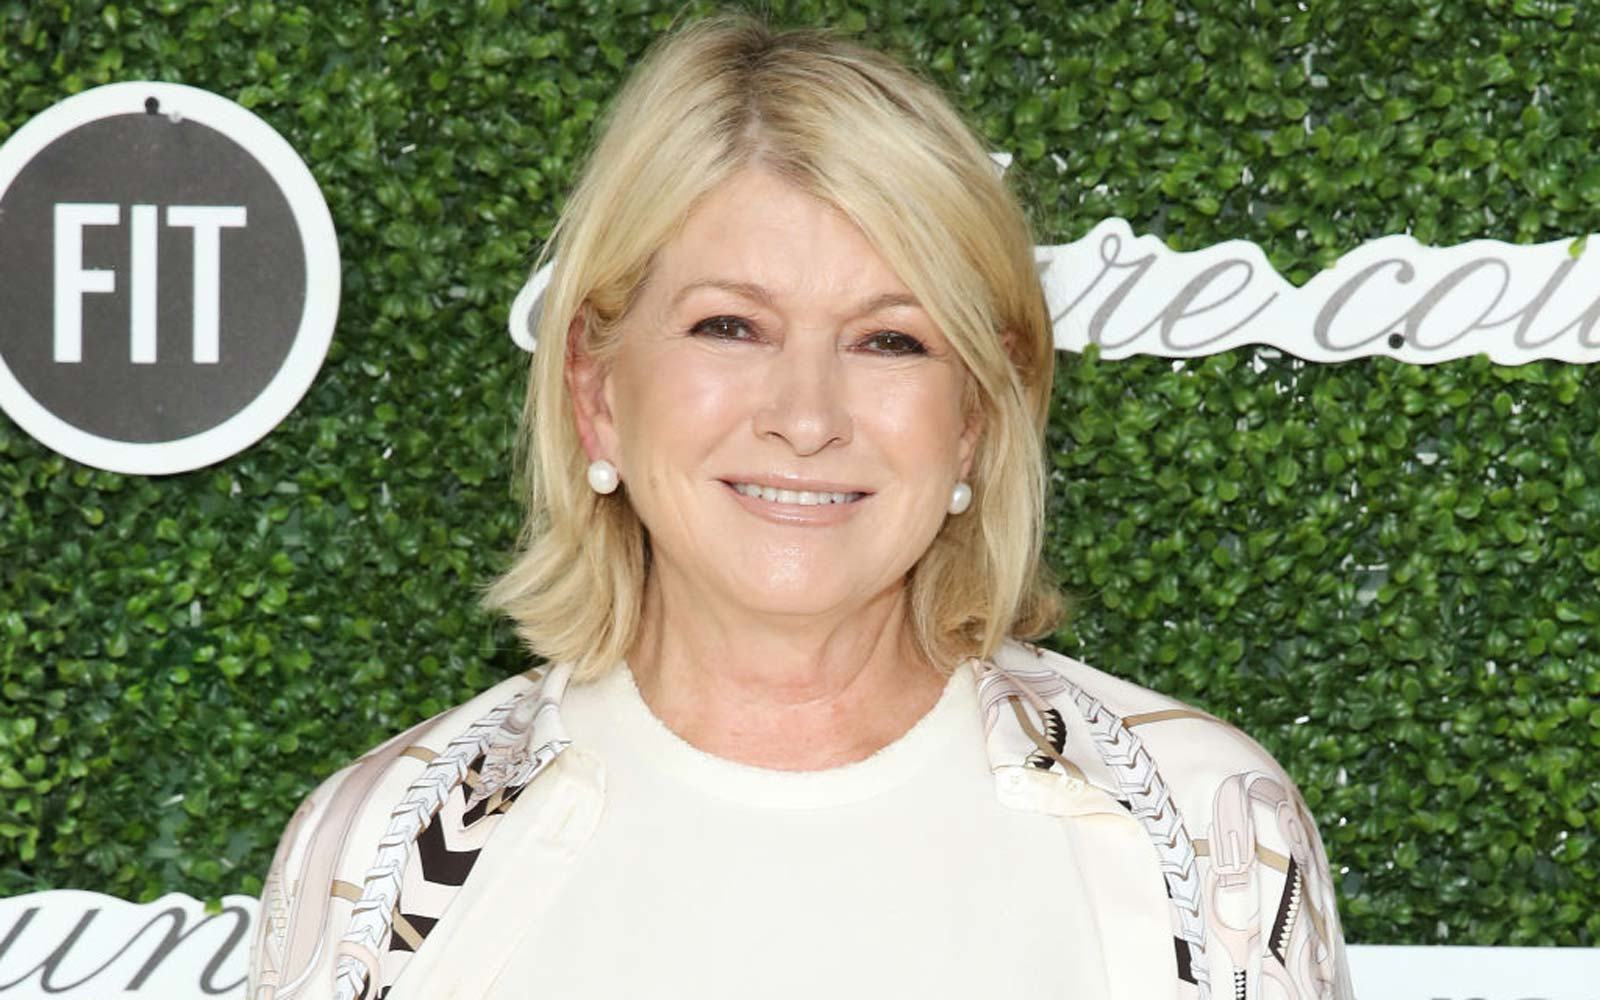 Martha Stewart attends the 2018 Couture Council Award Luncheon at David H. Koch Theater at Lincoln Center on September 5, 2018 in New York City.